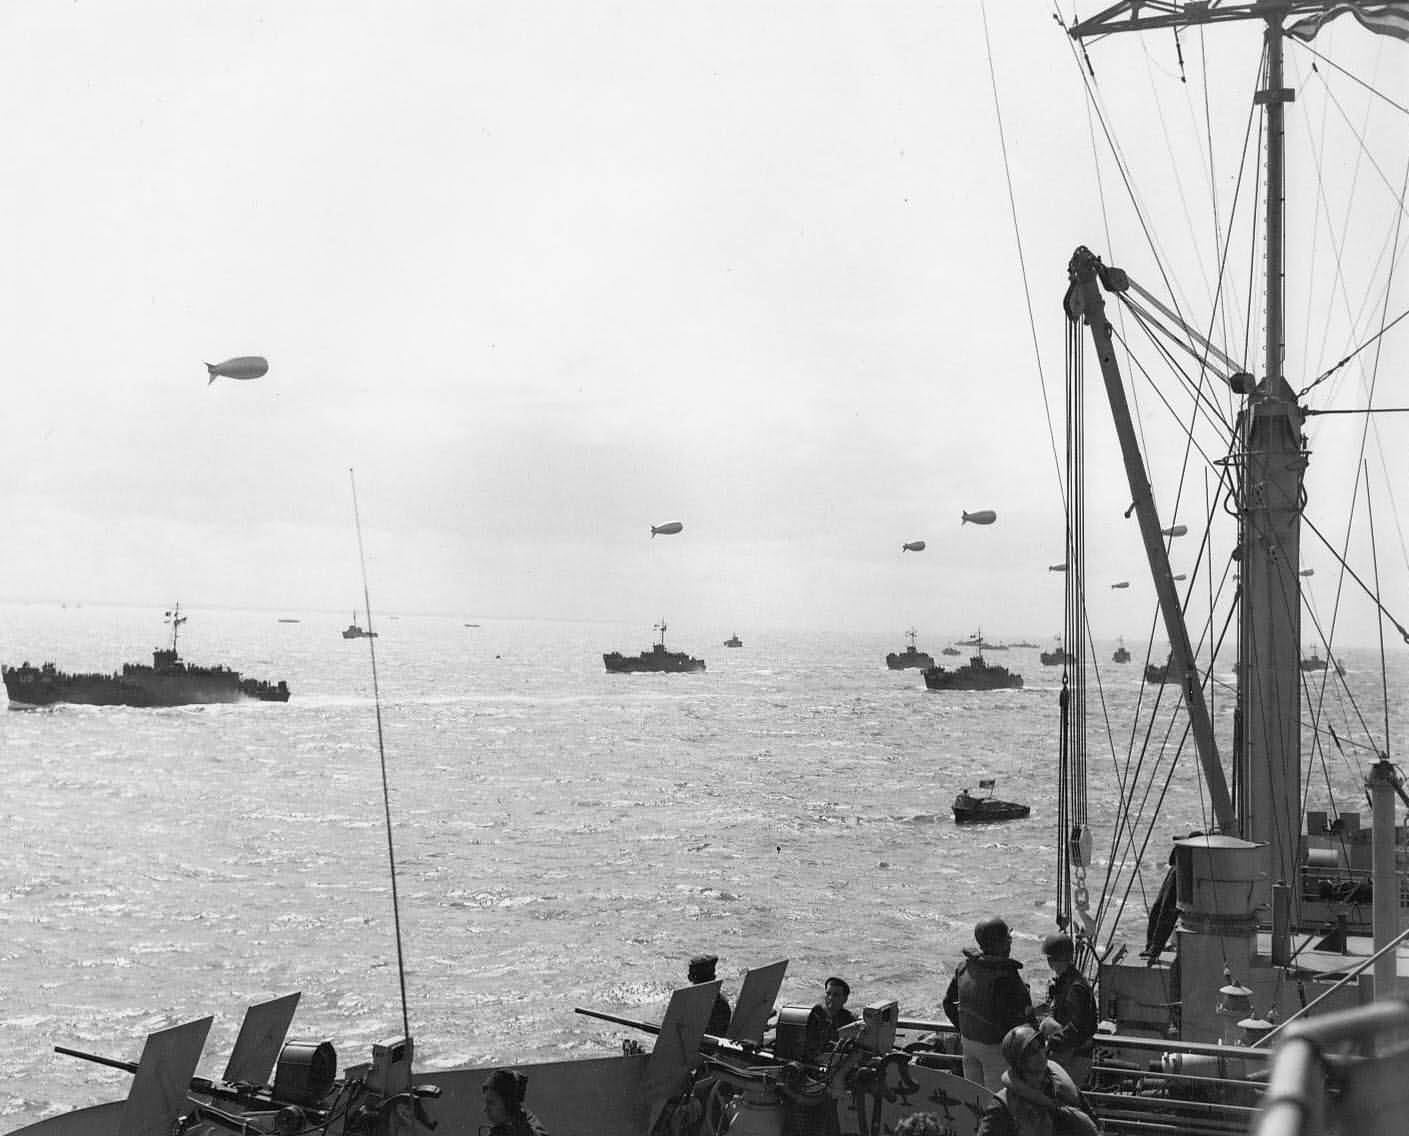 Invasion Fleet For D-Day Normandy 1944 Operation Overlord